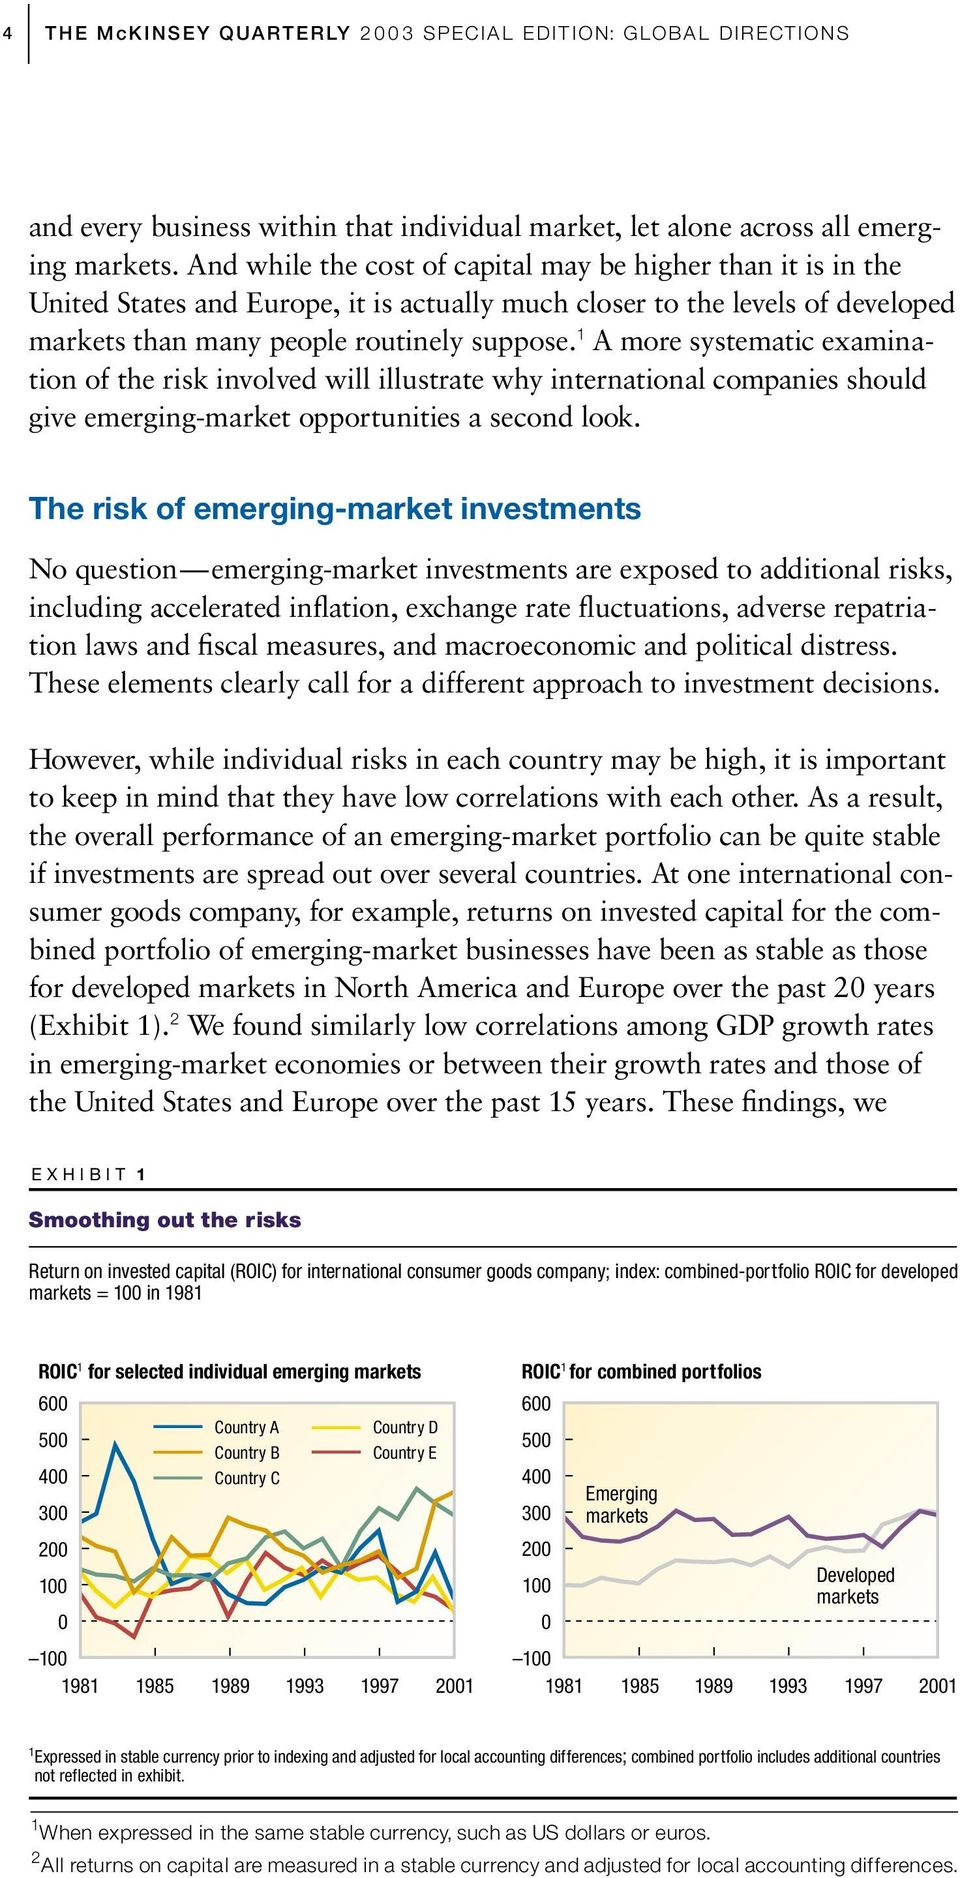 1 A more systematic examination of the risk involved will illustrate why international companies should give emerging-market opportunities a second look.